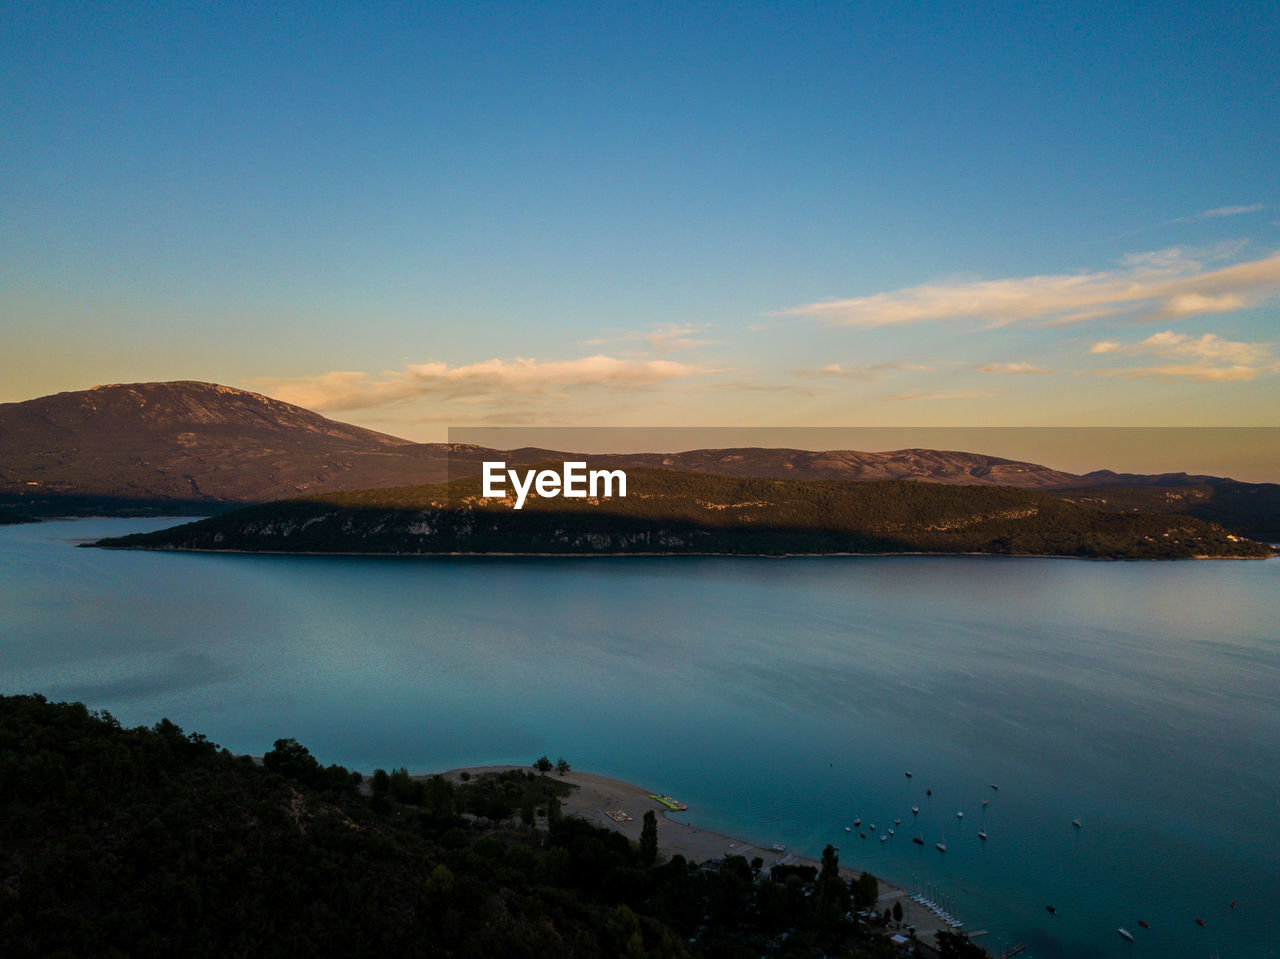 sky, water, scenics - nature, beauty in nature, mountain, tranquil scene, tranquility, nature, blue, no people, cloud - sky, idyllic, lake, copy space, non-urban scene, mountain range, beach, land, outdoors, bay